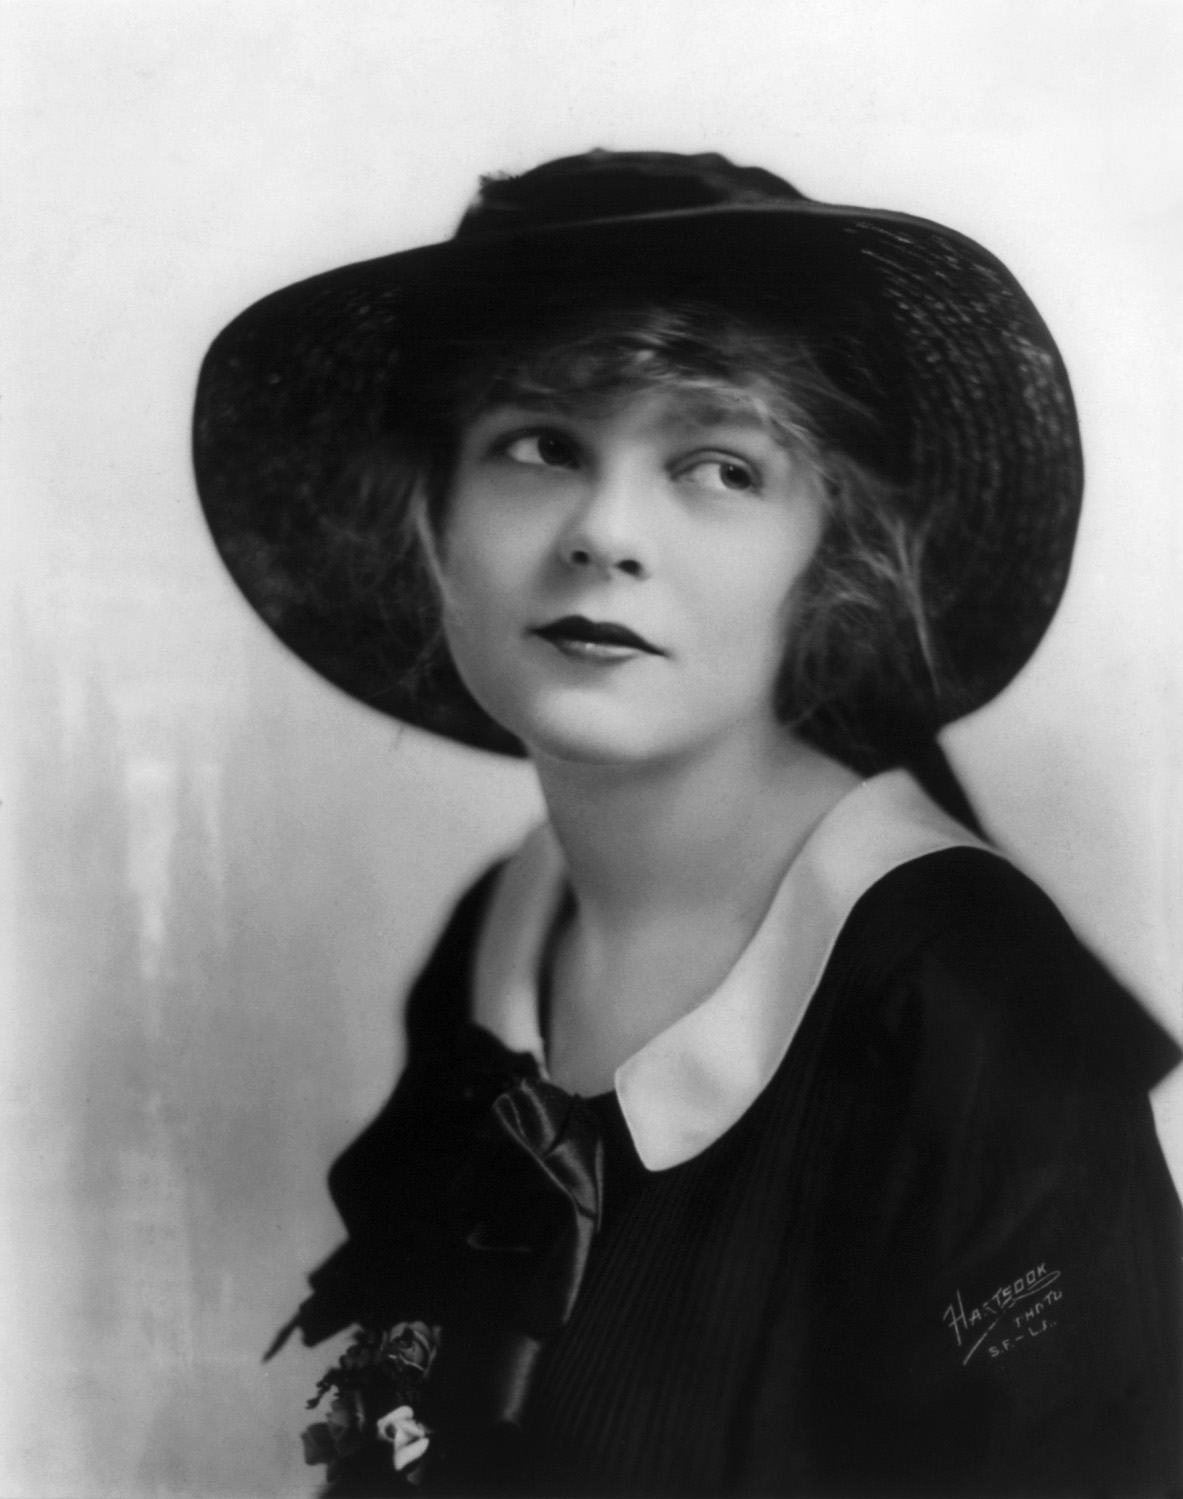 Depiction of Blanche Sweet